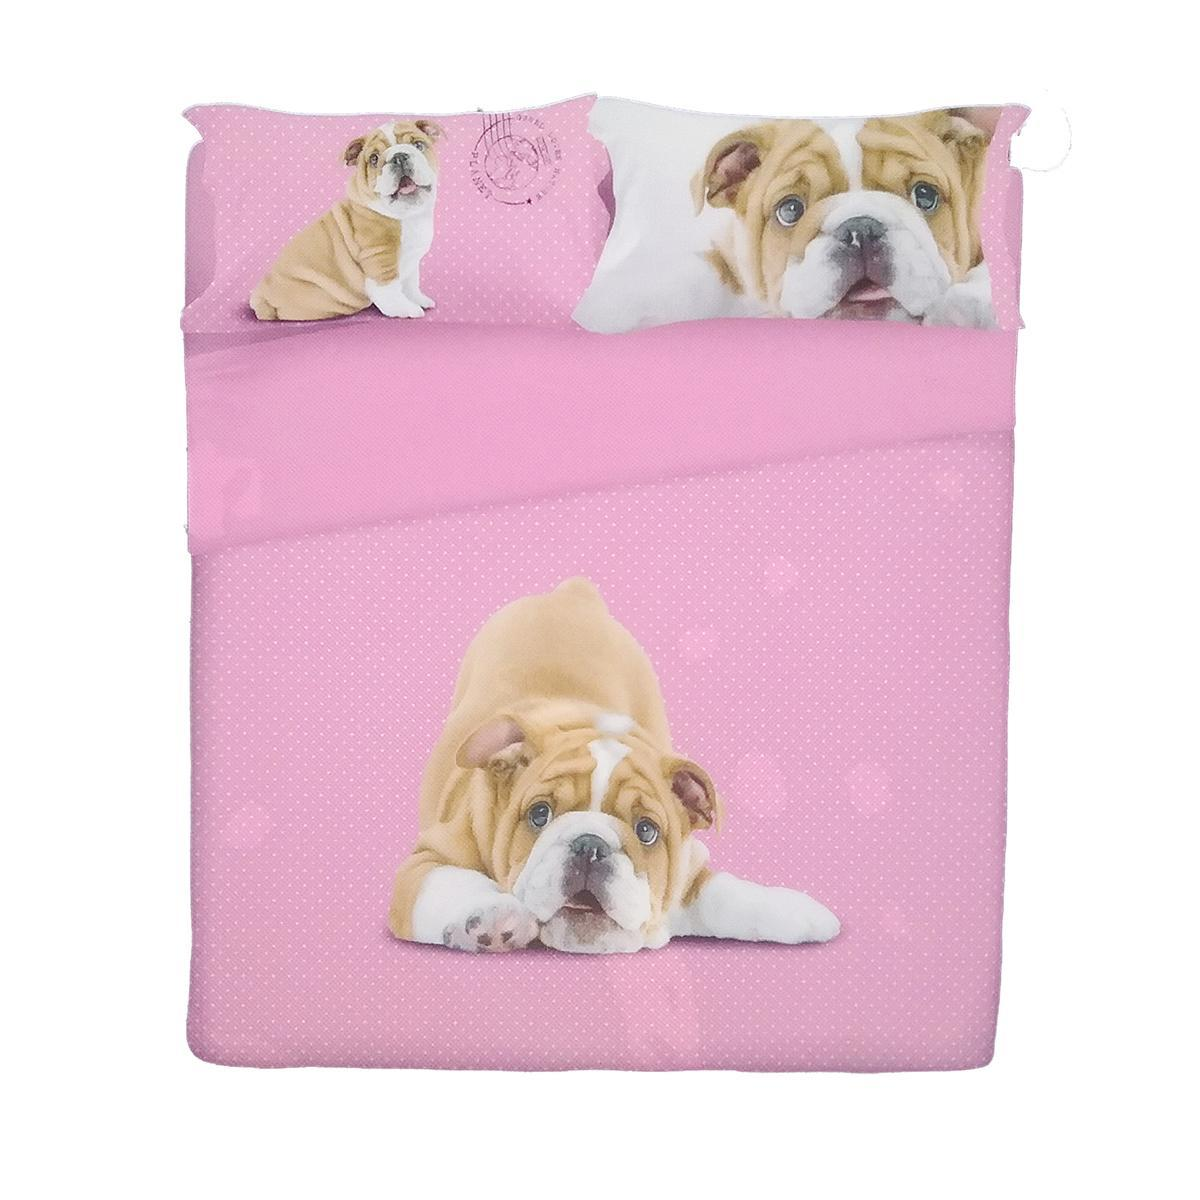 Copripiumino Gabel Planet.Duvet Cover Bed Gabel Photographic Doggy Shar Pei Puppies